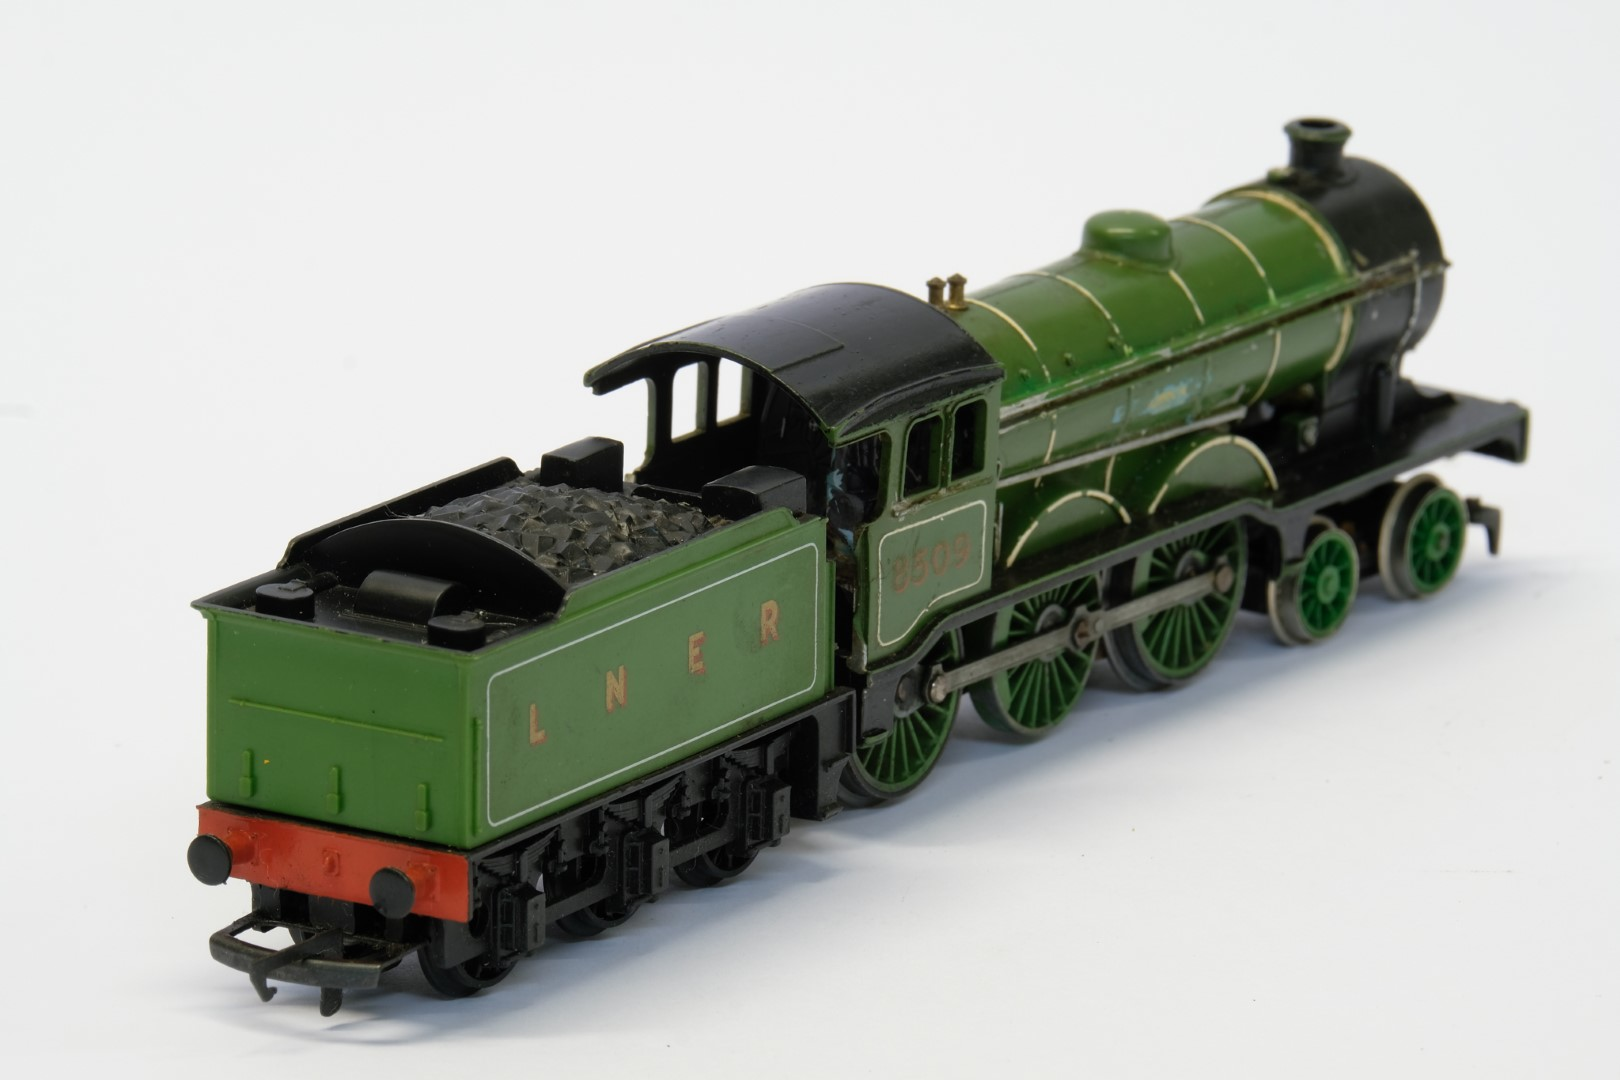 Hornby Class B12 4-6-0 8509 in LNER Green - No Box - Image 3 of 4